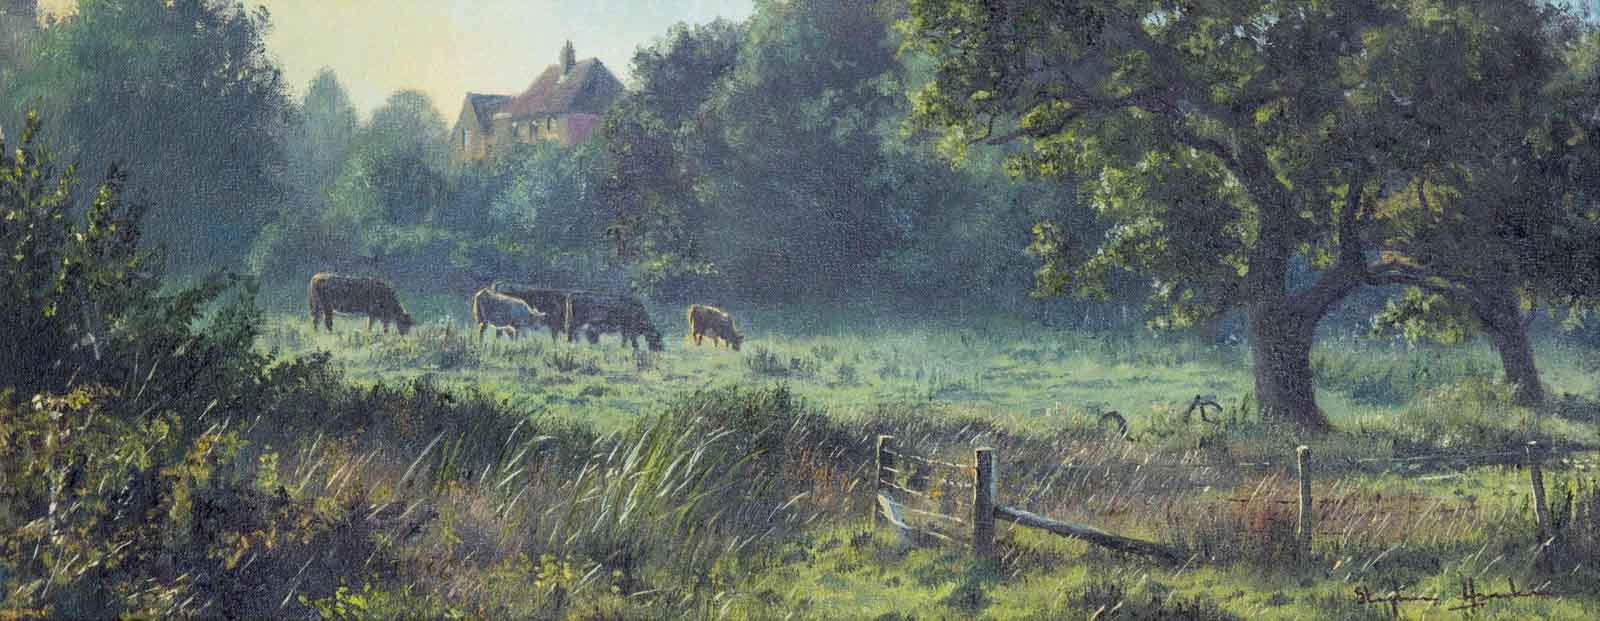 Countryside Life